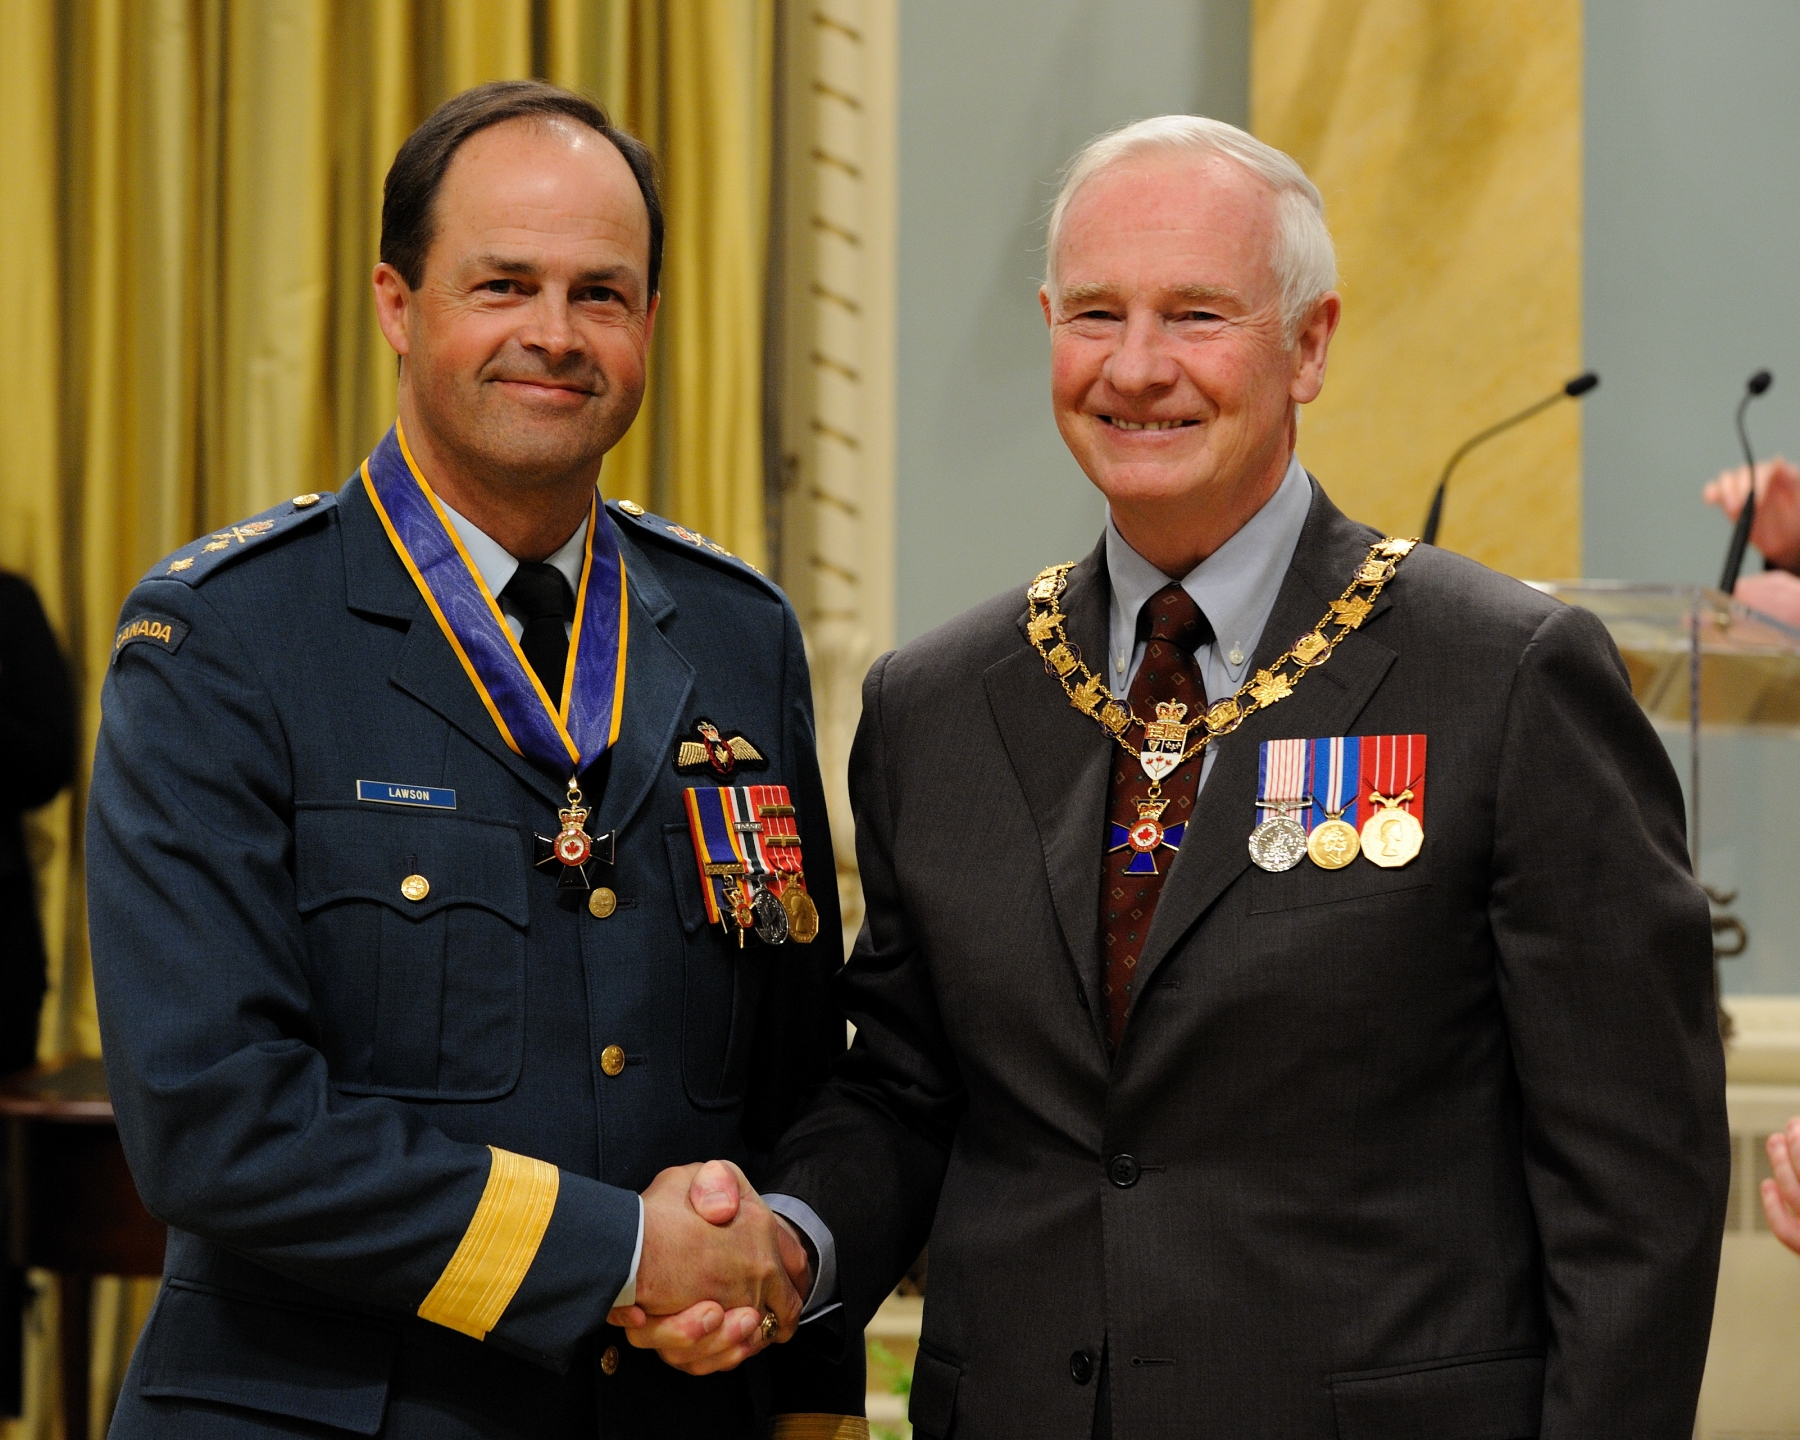 His Excellency presented the Order of Military Merit at the Commander level (C.M.M.) to Major-General Thomas James Lawson, C.M.M., C.D., Office of Chief of the Air Staff, Ottawa, Ontario. This is a promotion within the Order.